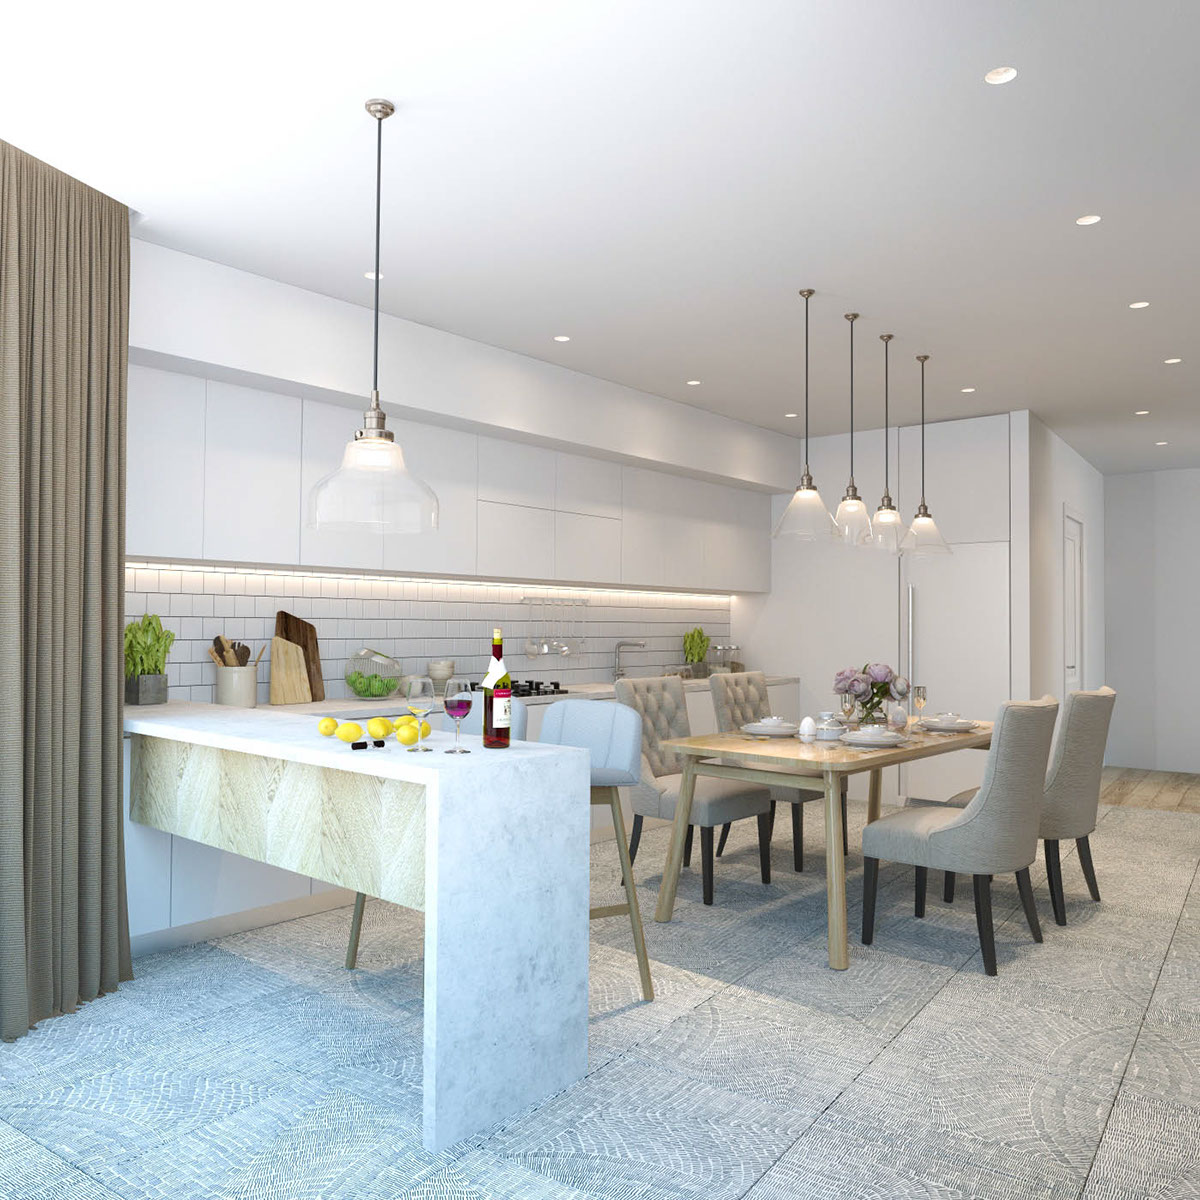 Apartment Living For The Modern Minimalist: Minimalist Apartment Design Which Combine A Modern Decor